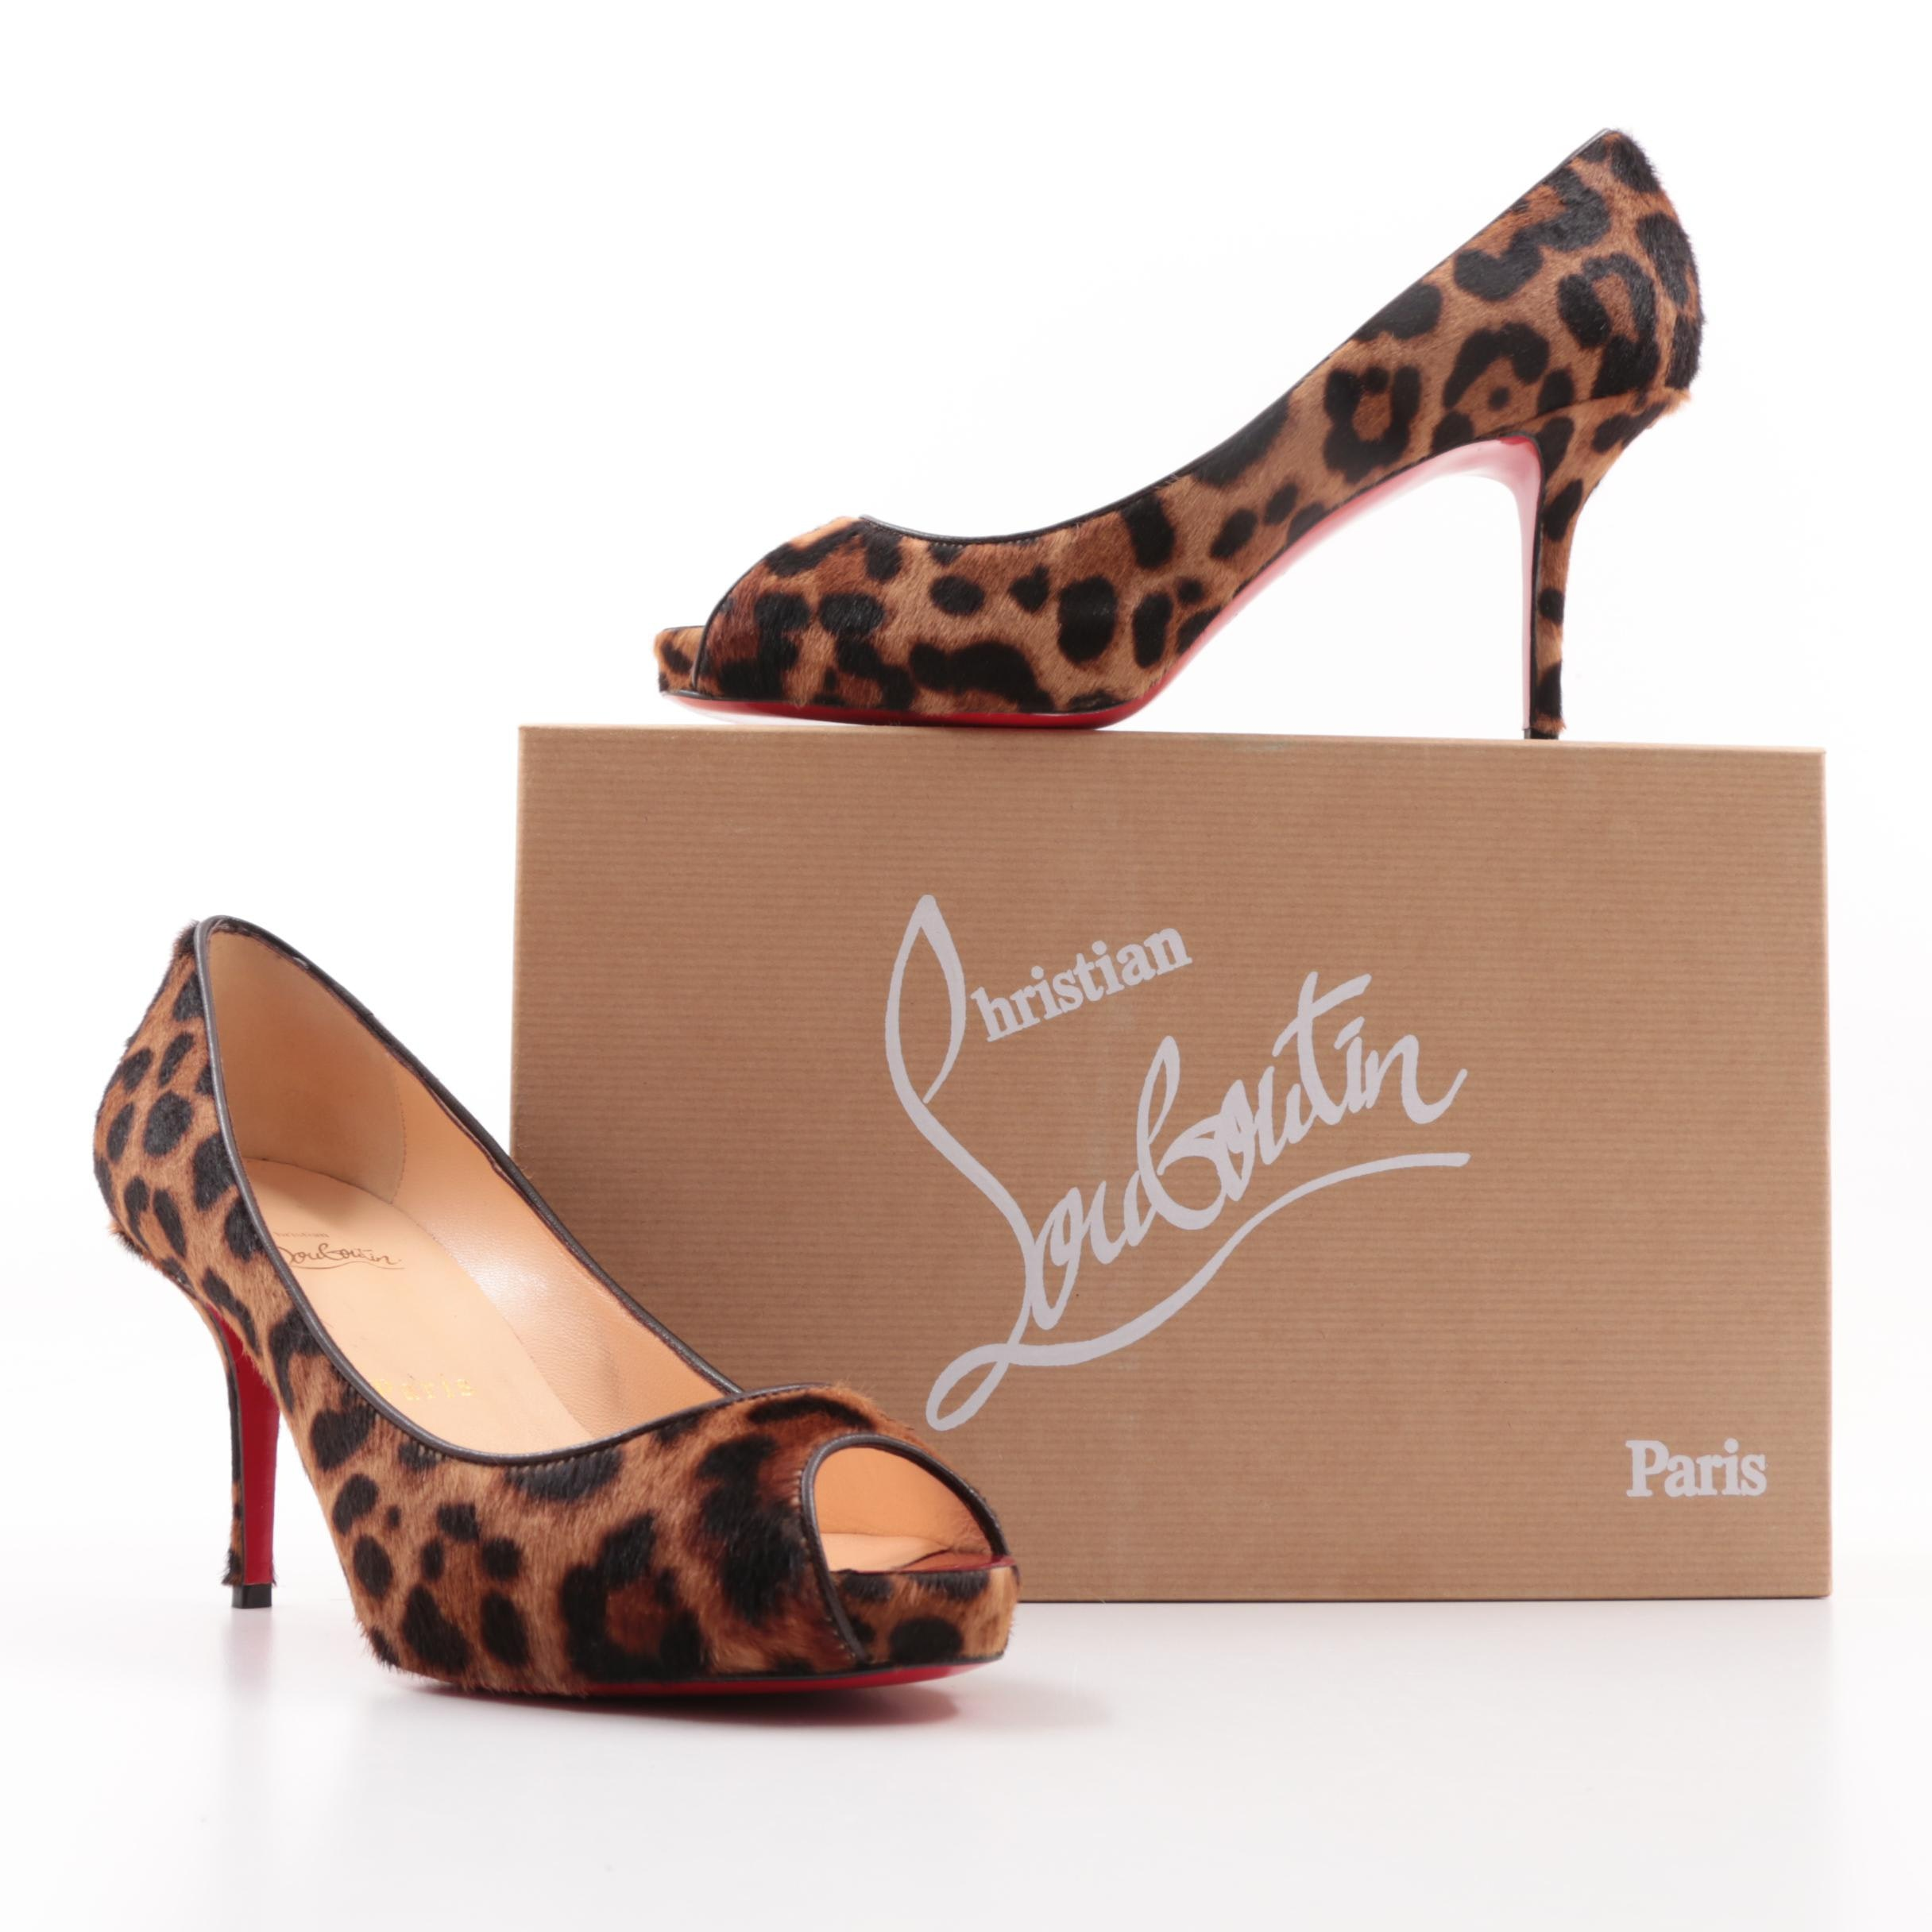 Christian Louboutin Paris Mater Claude Leopard Print Pony Hair Platform Pumps